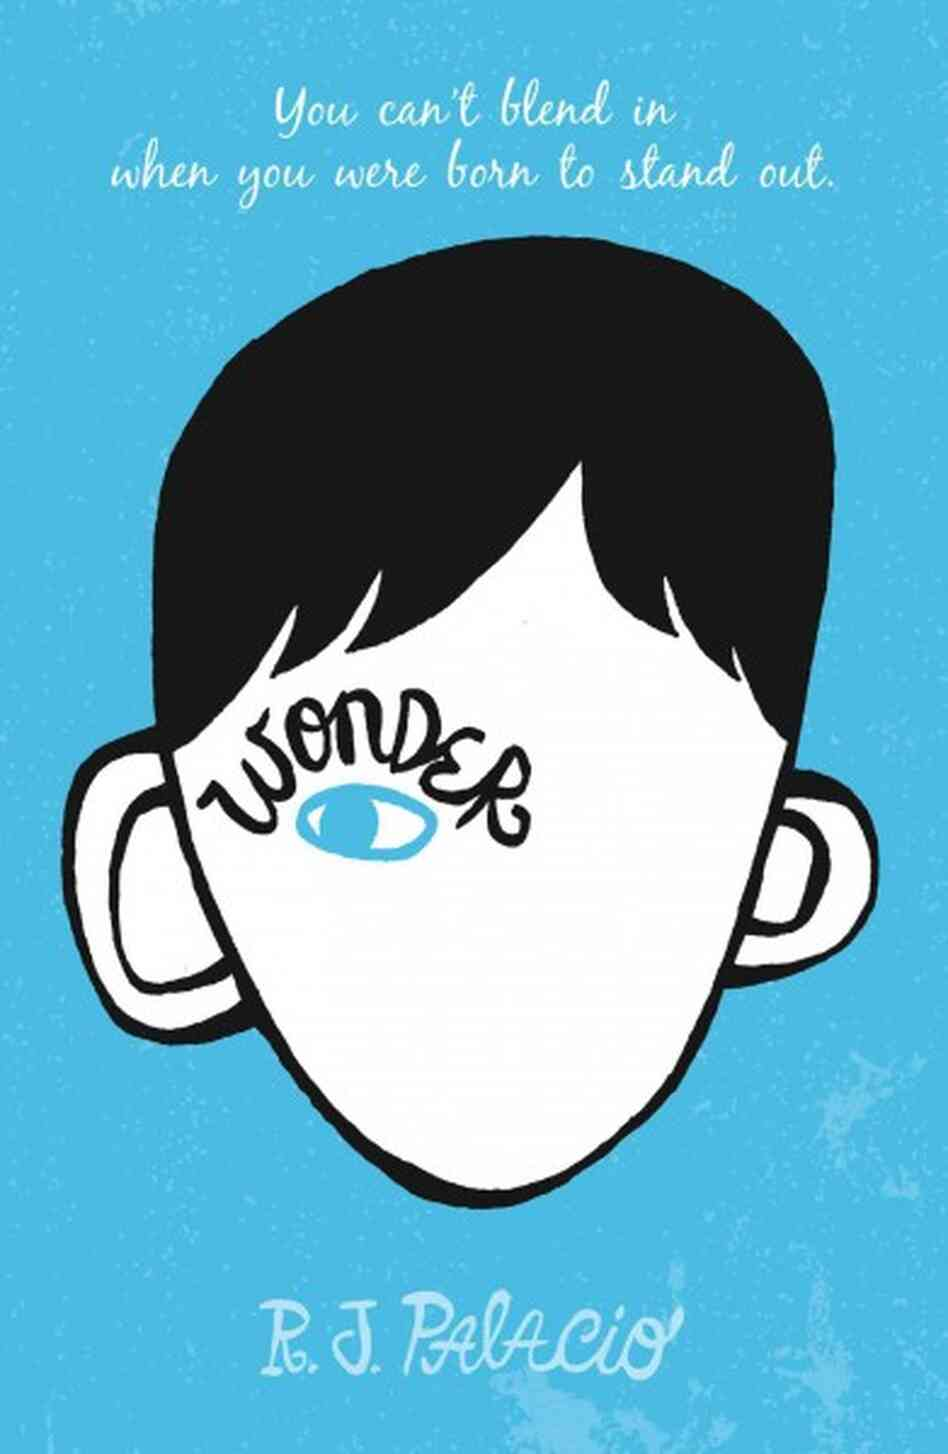 Our Class Book this half term is 'Wonder' by R.J. Palcio.